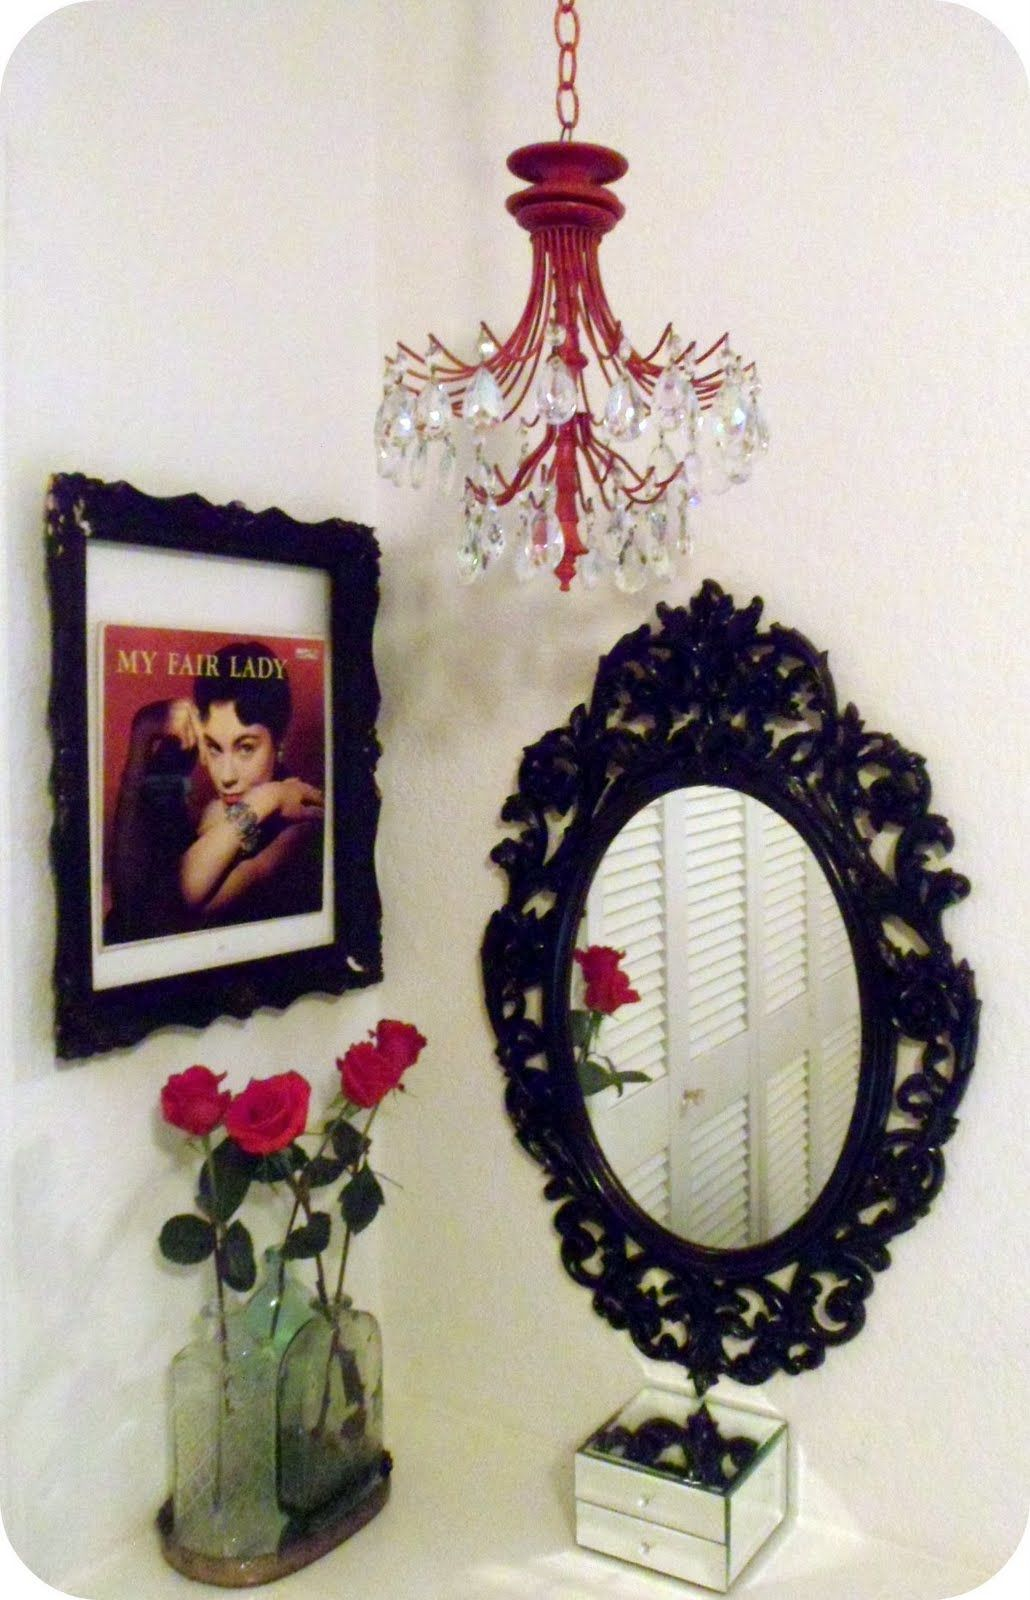 Mirror Spray Paint Revamp | Thrift items to look for | Pinterest ...